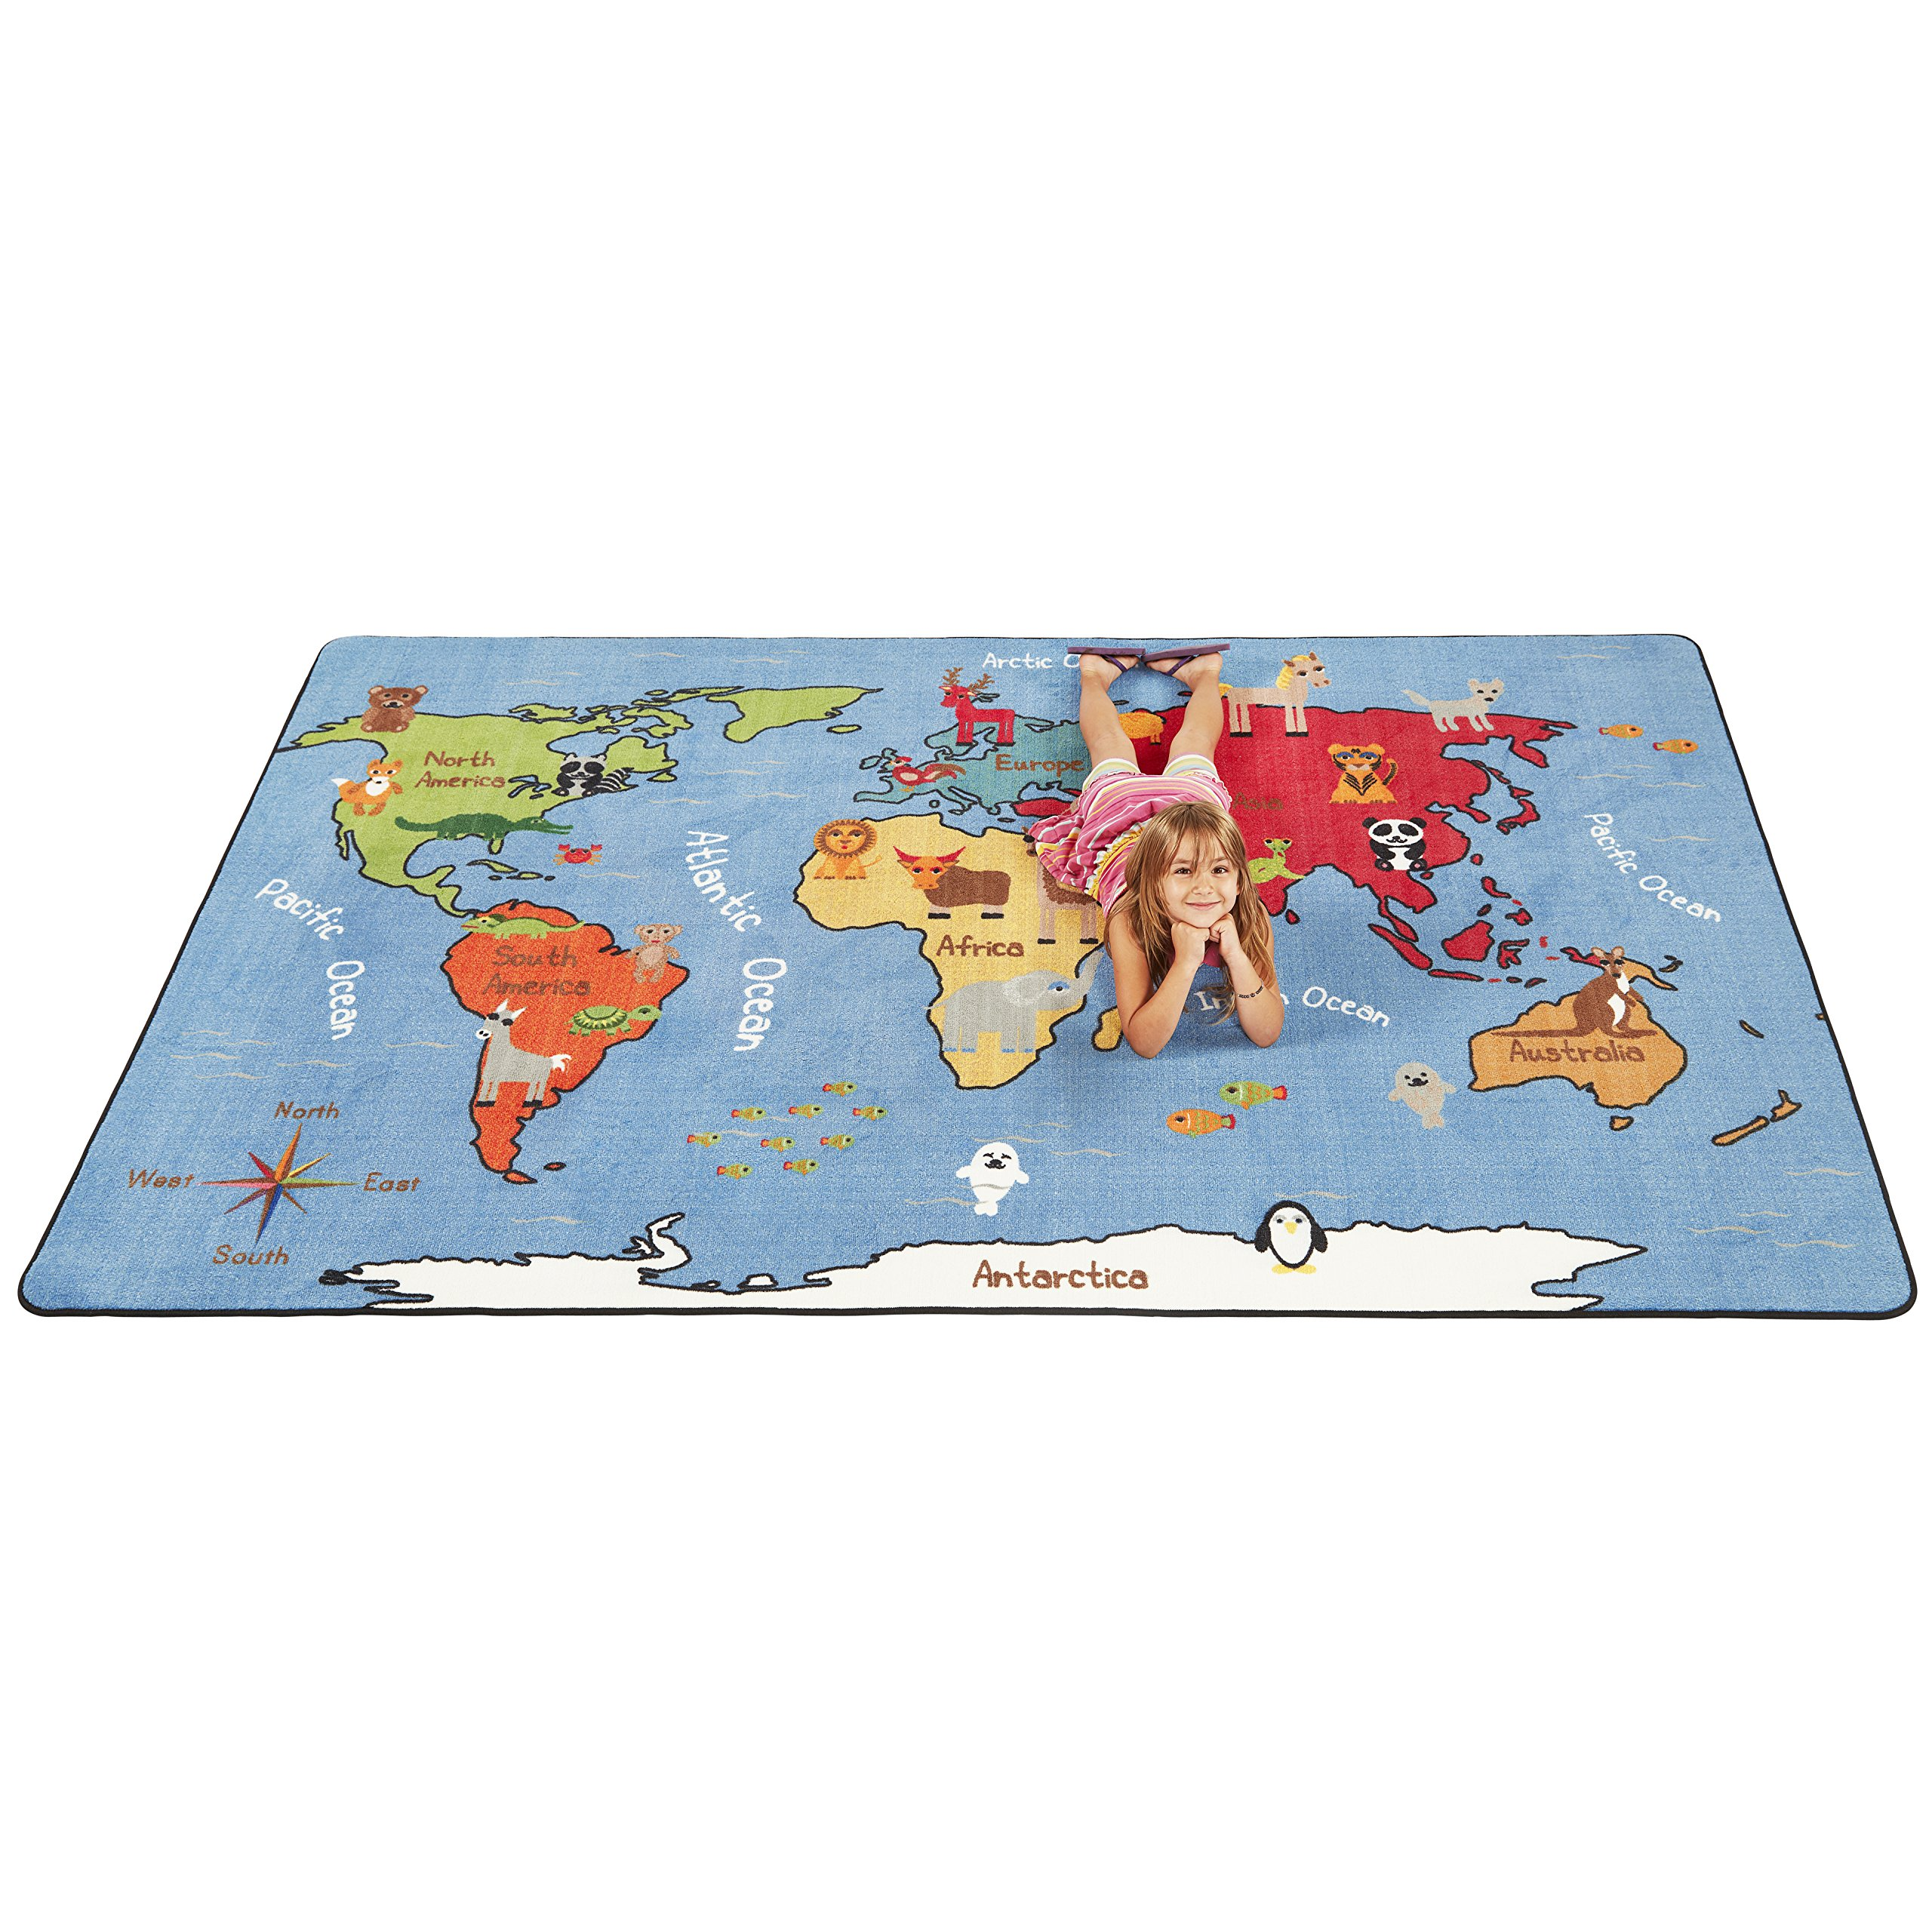 ECR4Kids Animals of the World Educational Activity Rug for Children, School Classroom Learning Carpet, Rectangle, 6 x 9-Feet by ECR4Kids (Image #2)